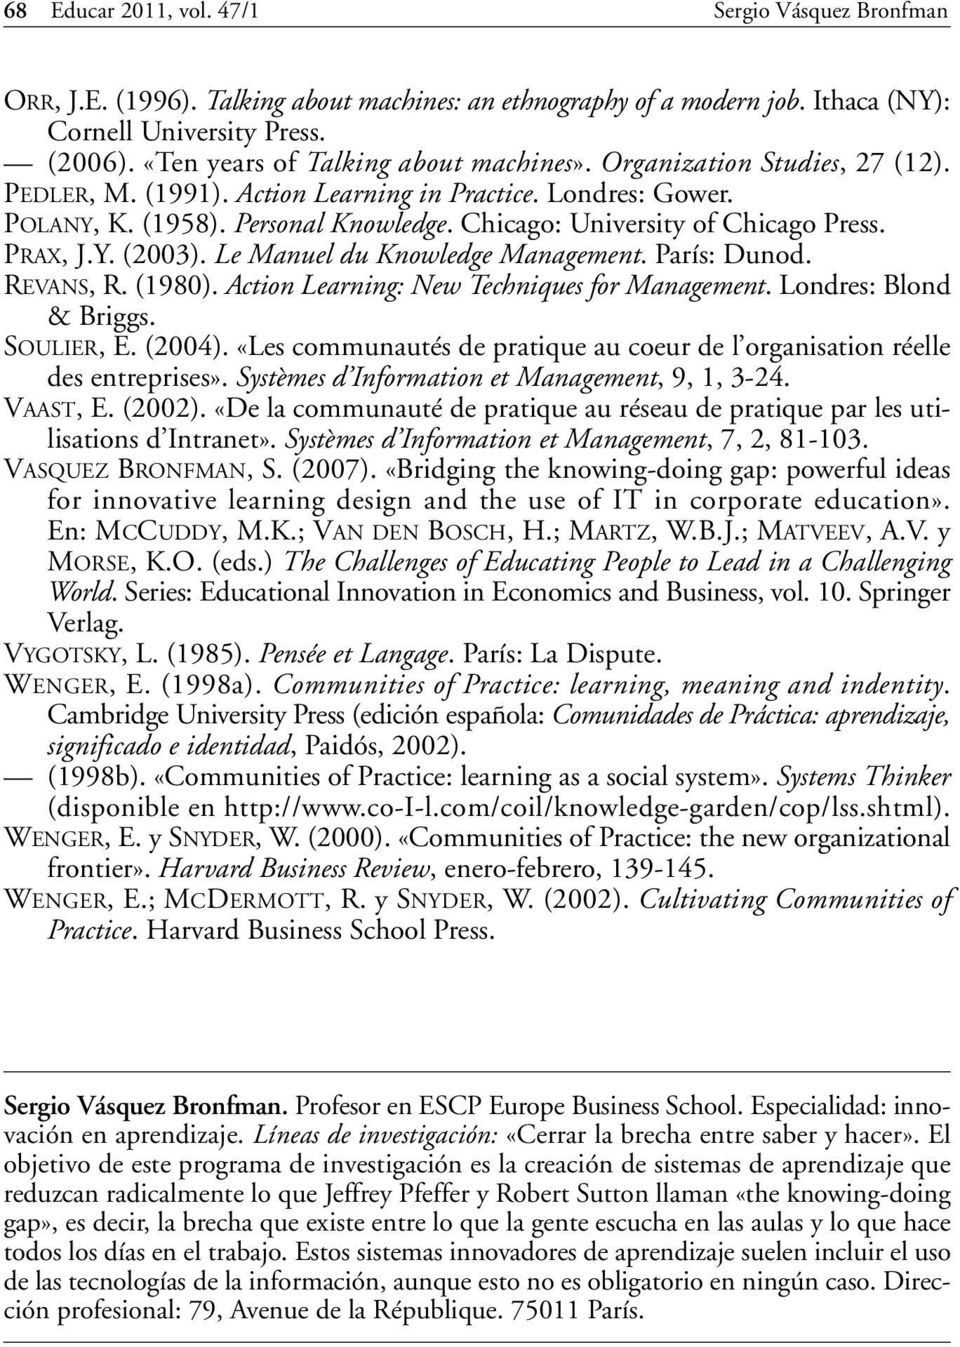 Chicago: University of Chicago Press. PRAX, J.Y. (2003). Le Manuel du Knowledge Management. París: Dunod. REVANS, R. (1980). Action Learning: New Techniques for Management. Londres: Blond & Briggs.